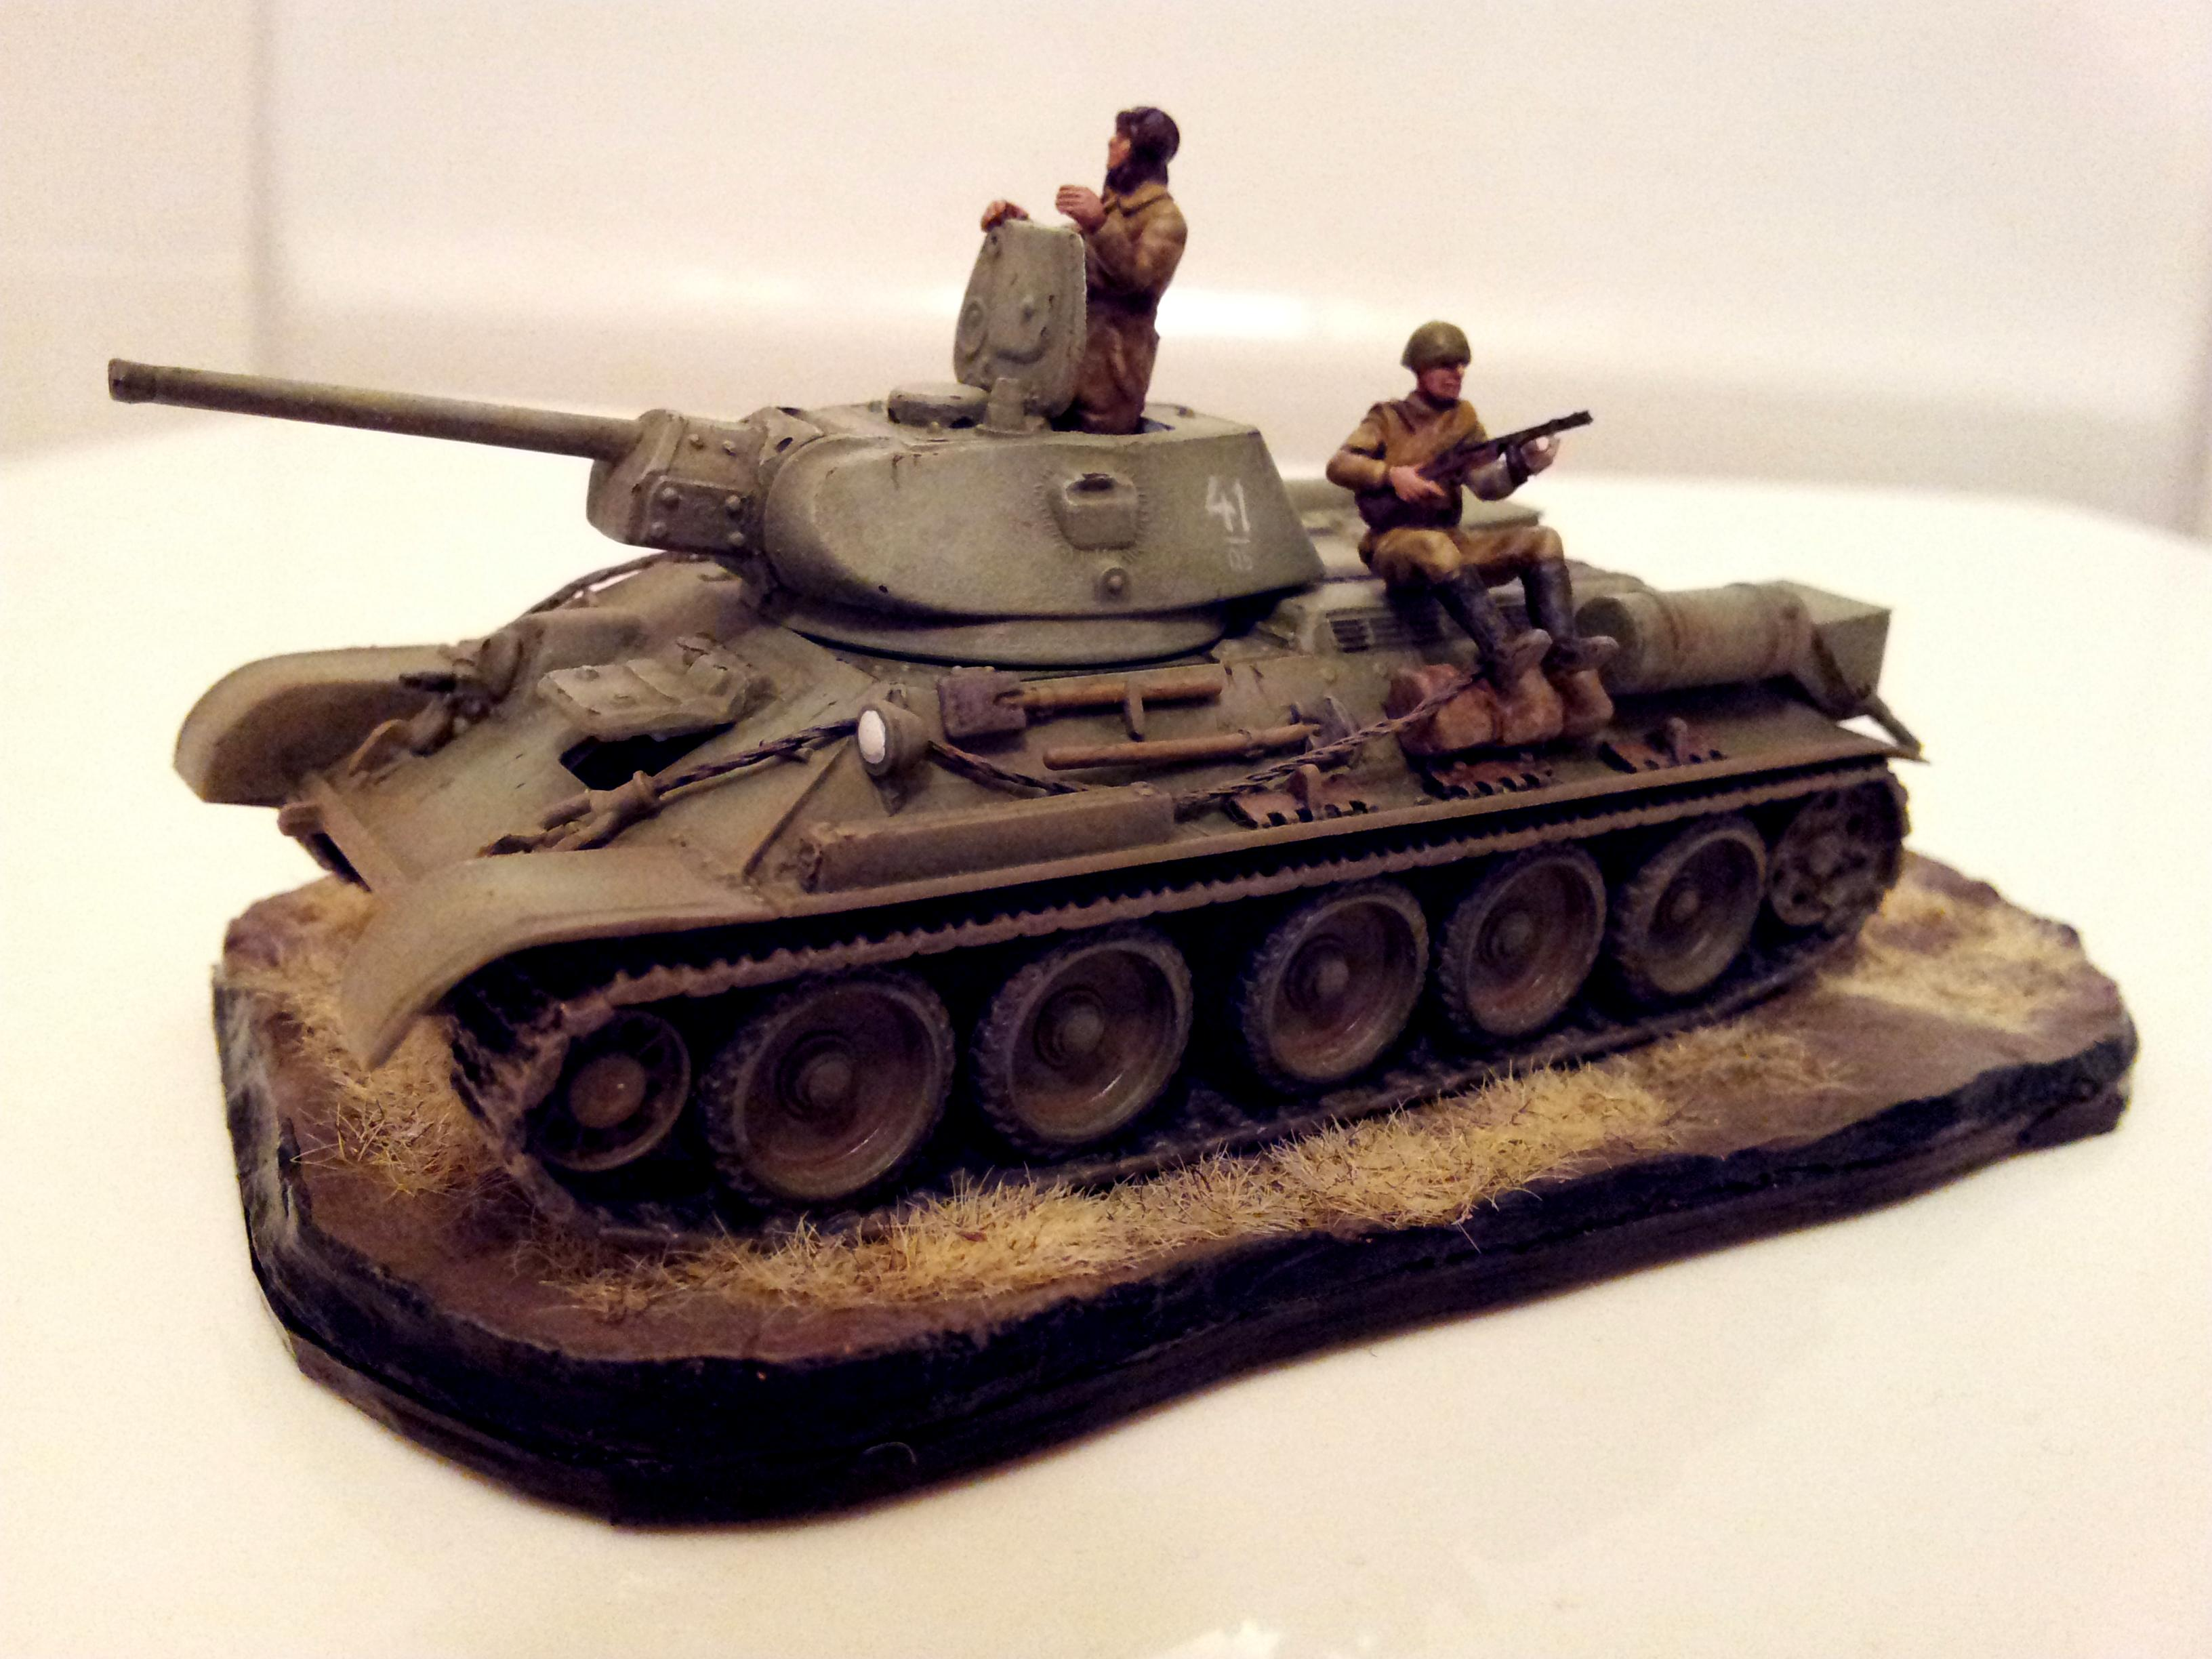 1/72, Braille, Russians, T-34, Tank, World War 2